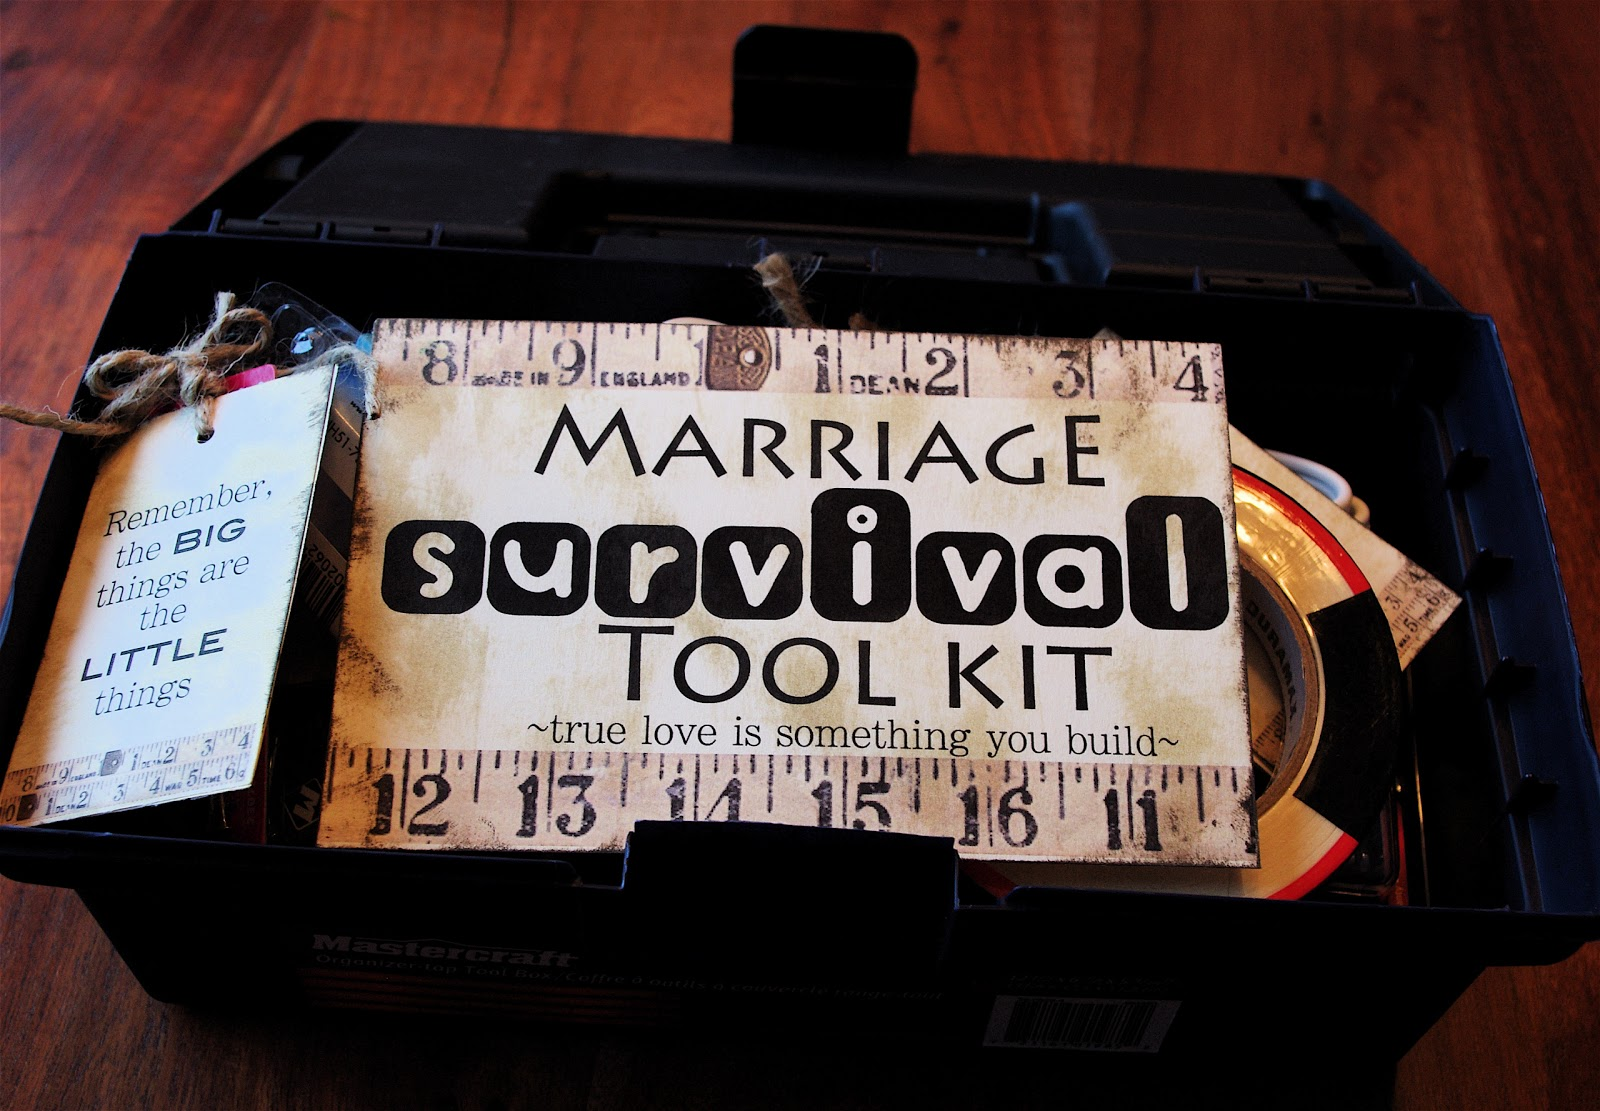 Wedding Gift Ideas For Bride From Best Friend : ... marriage survival tool kit together this was for a wedding gift but